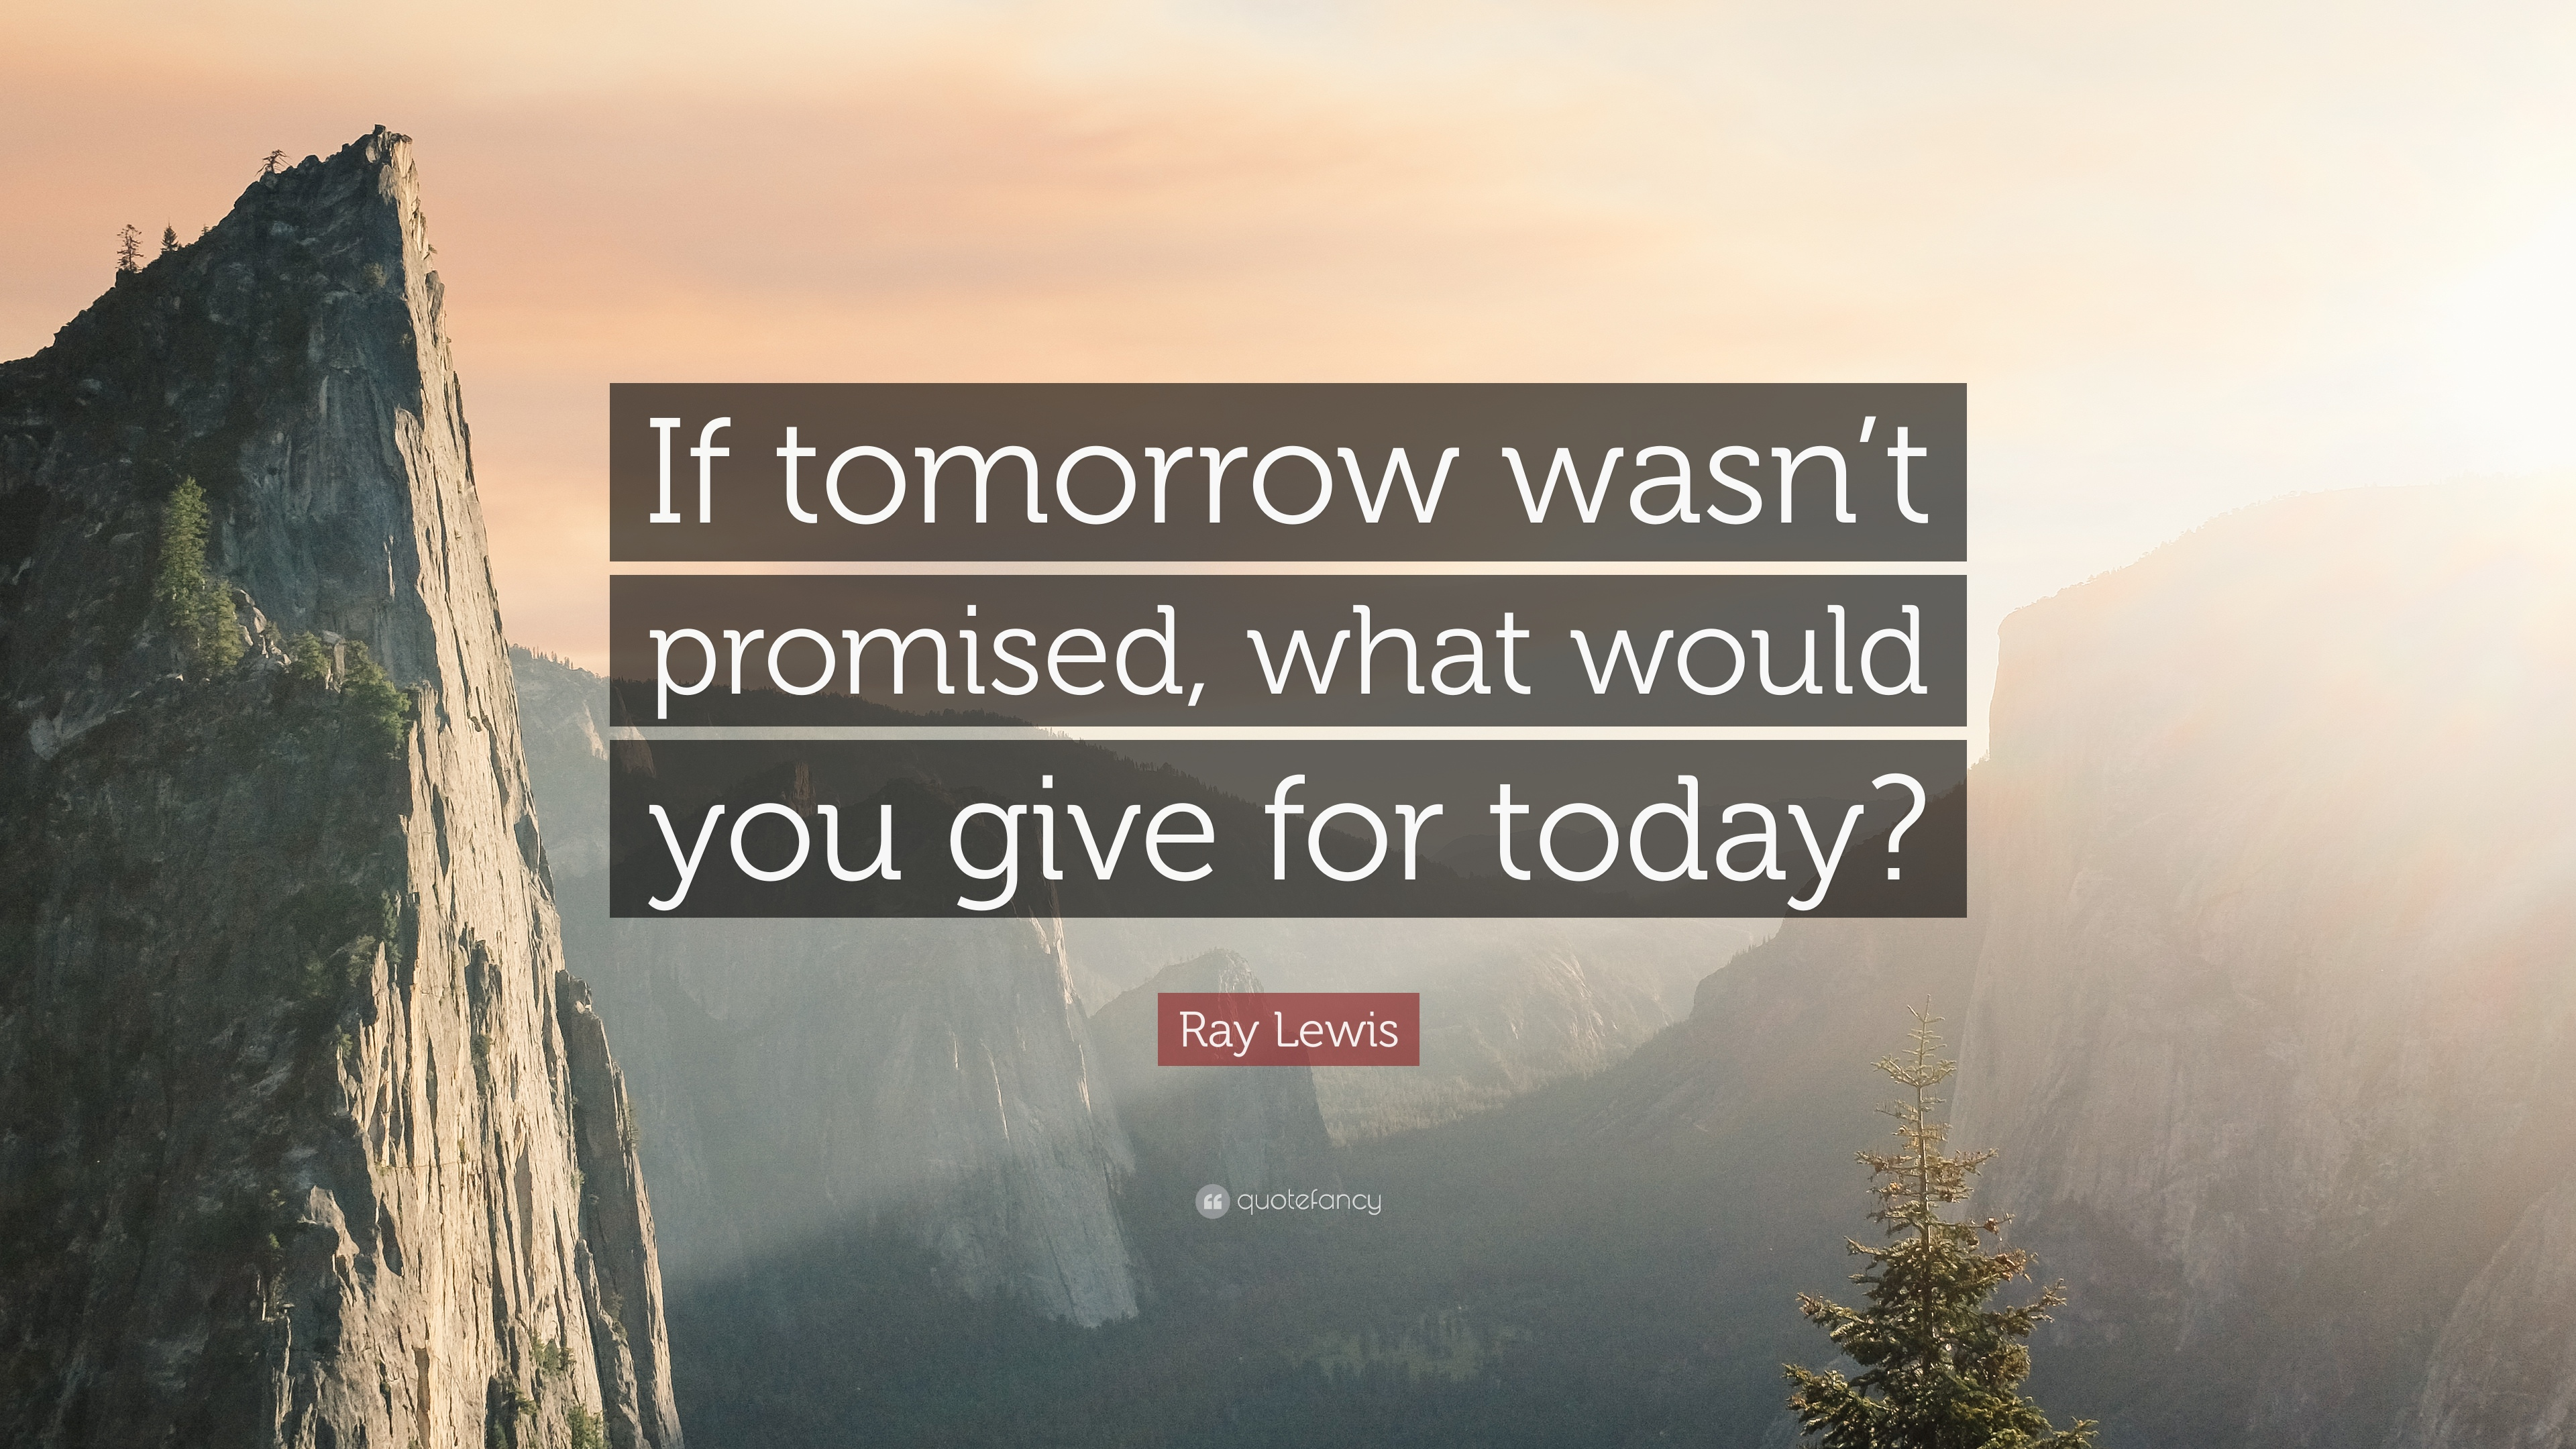 ray lewis quote if tomorrow wasnt promised what would you give